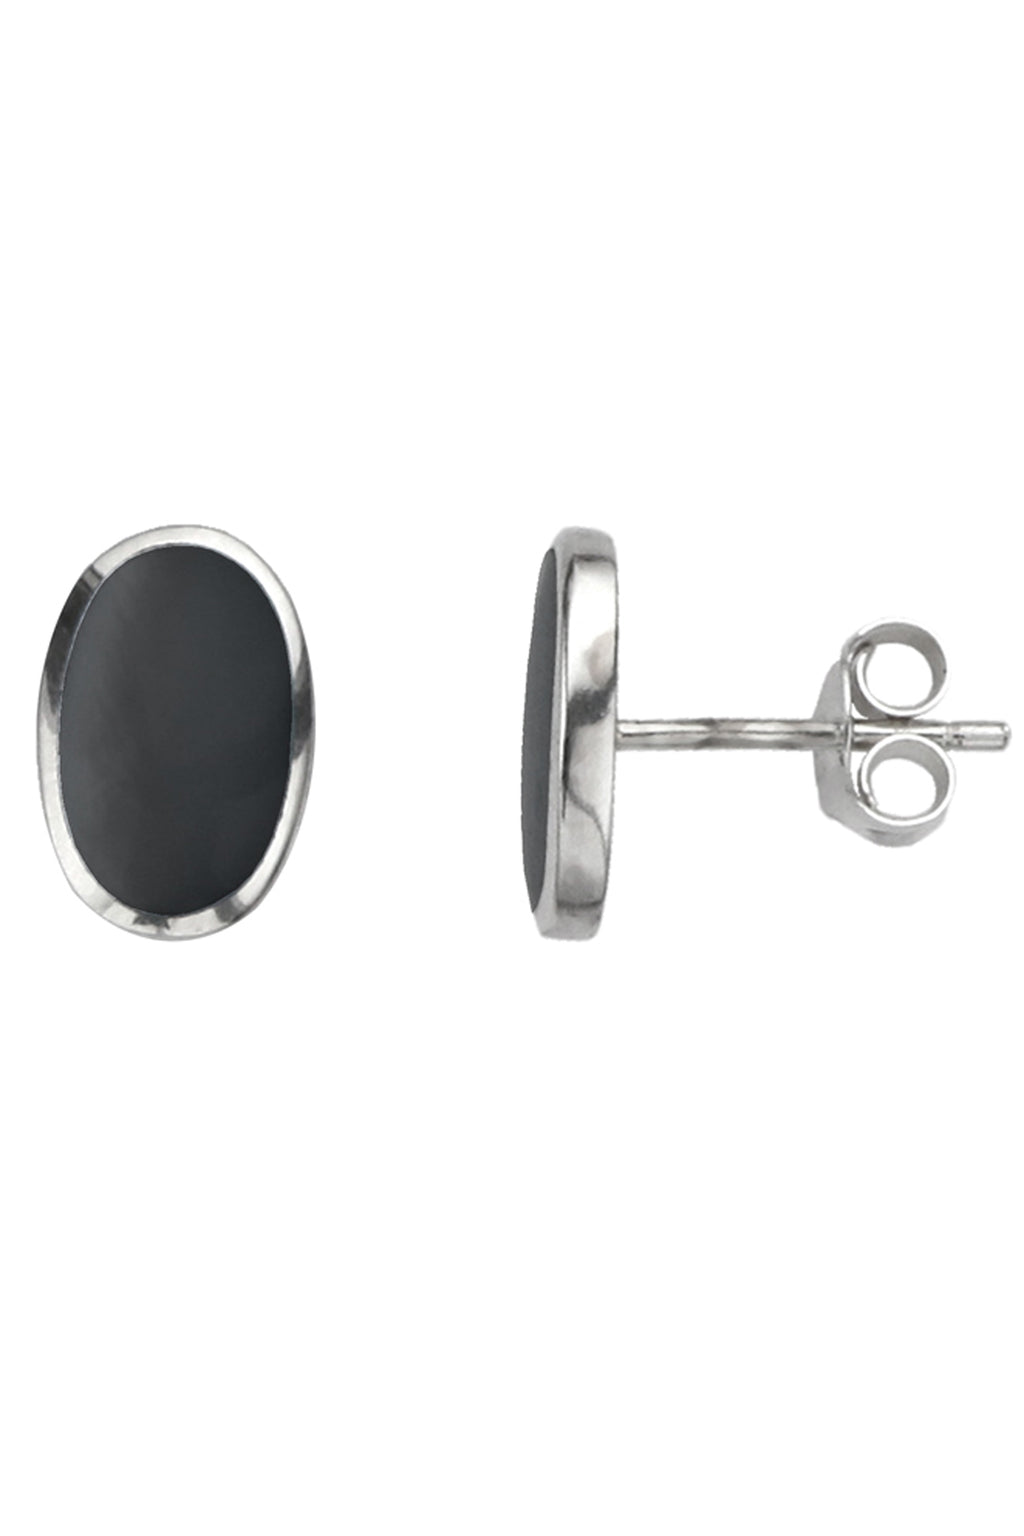 Silver Oval Onyx Stud Earrings / Nina B Jewellery